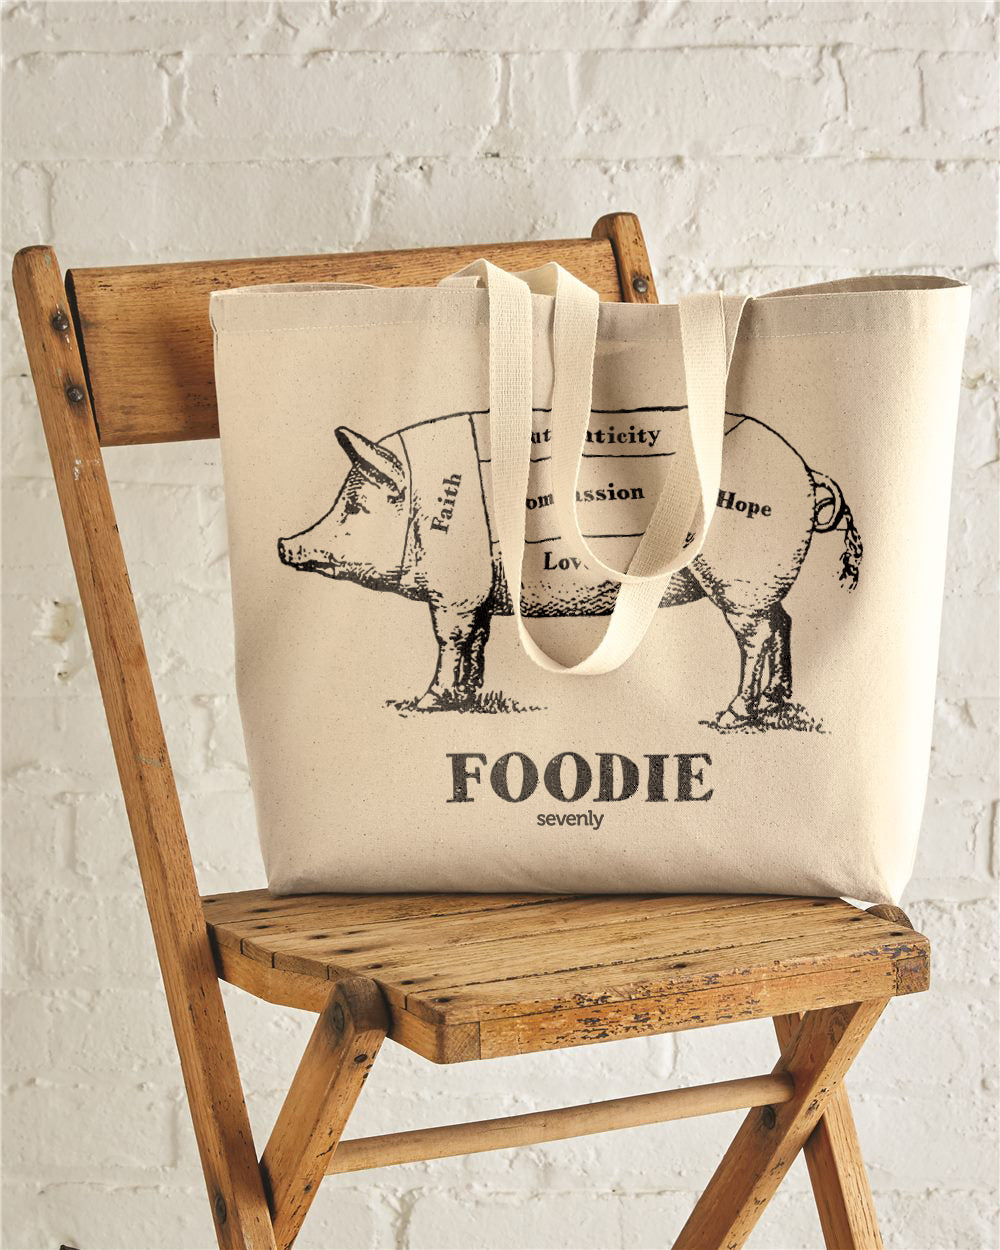 Foodie Jumbo Cotton Canvas Tote Bag